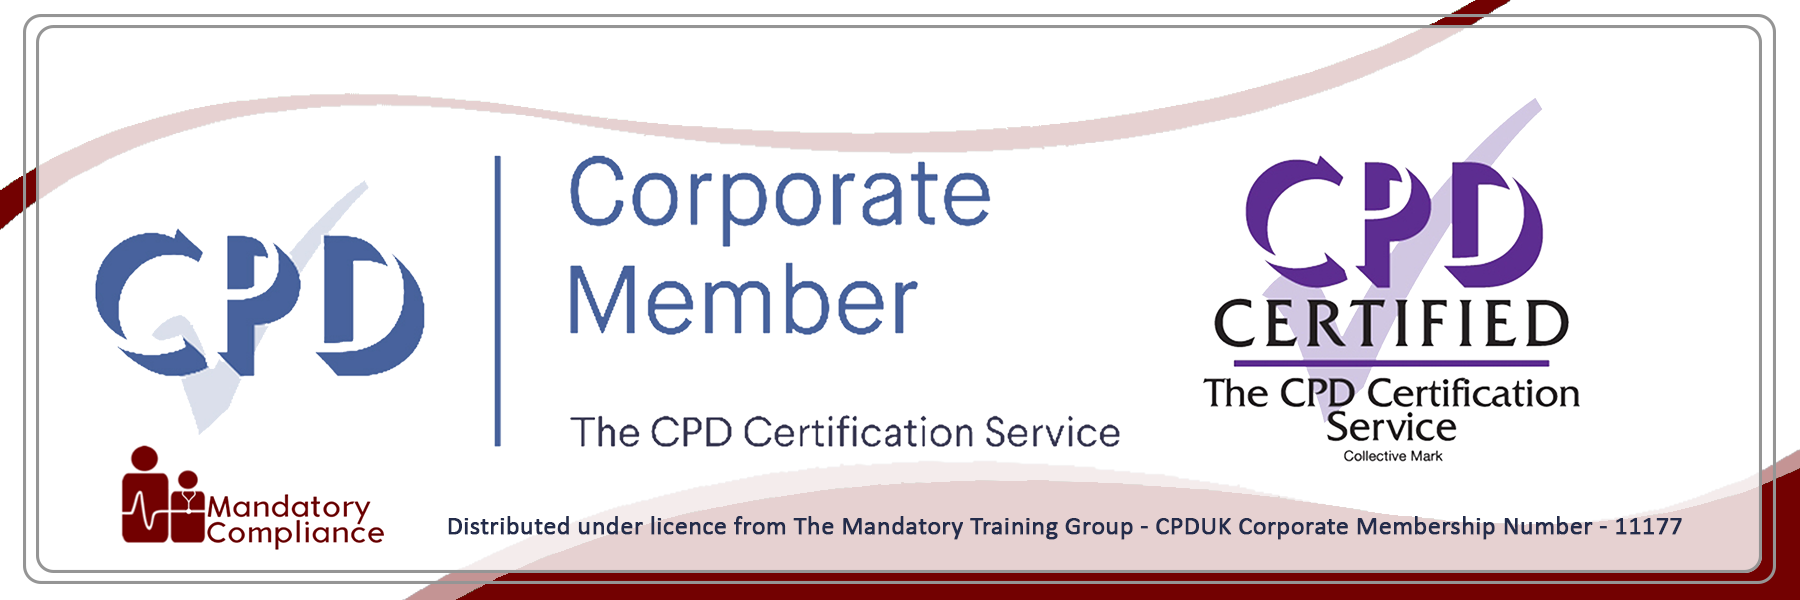 Pressure Ulcer Prevention - Online Course - The MAndatory Compliance UK -